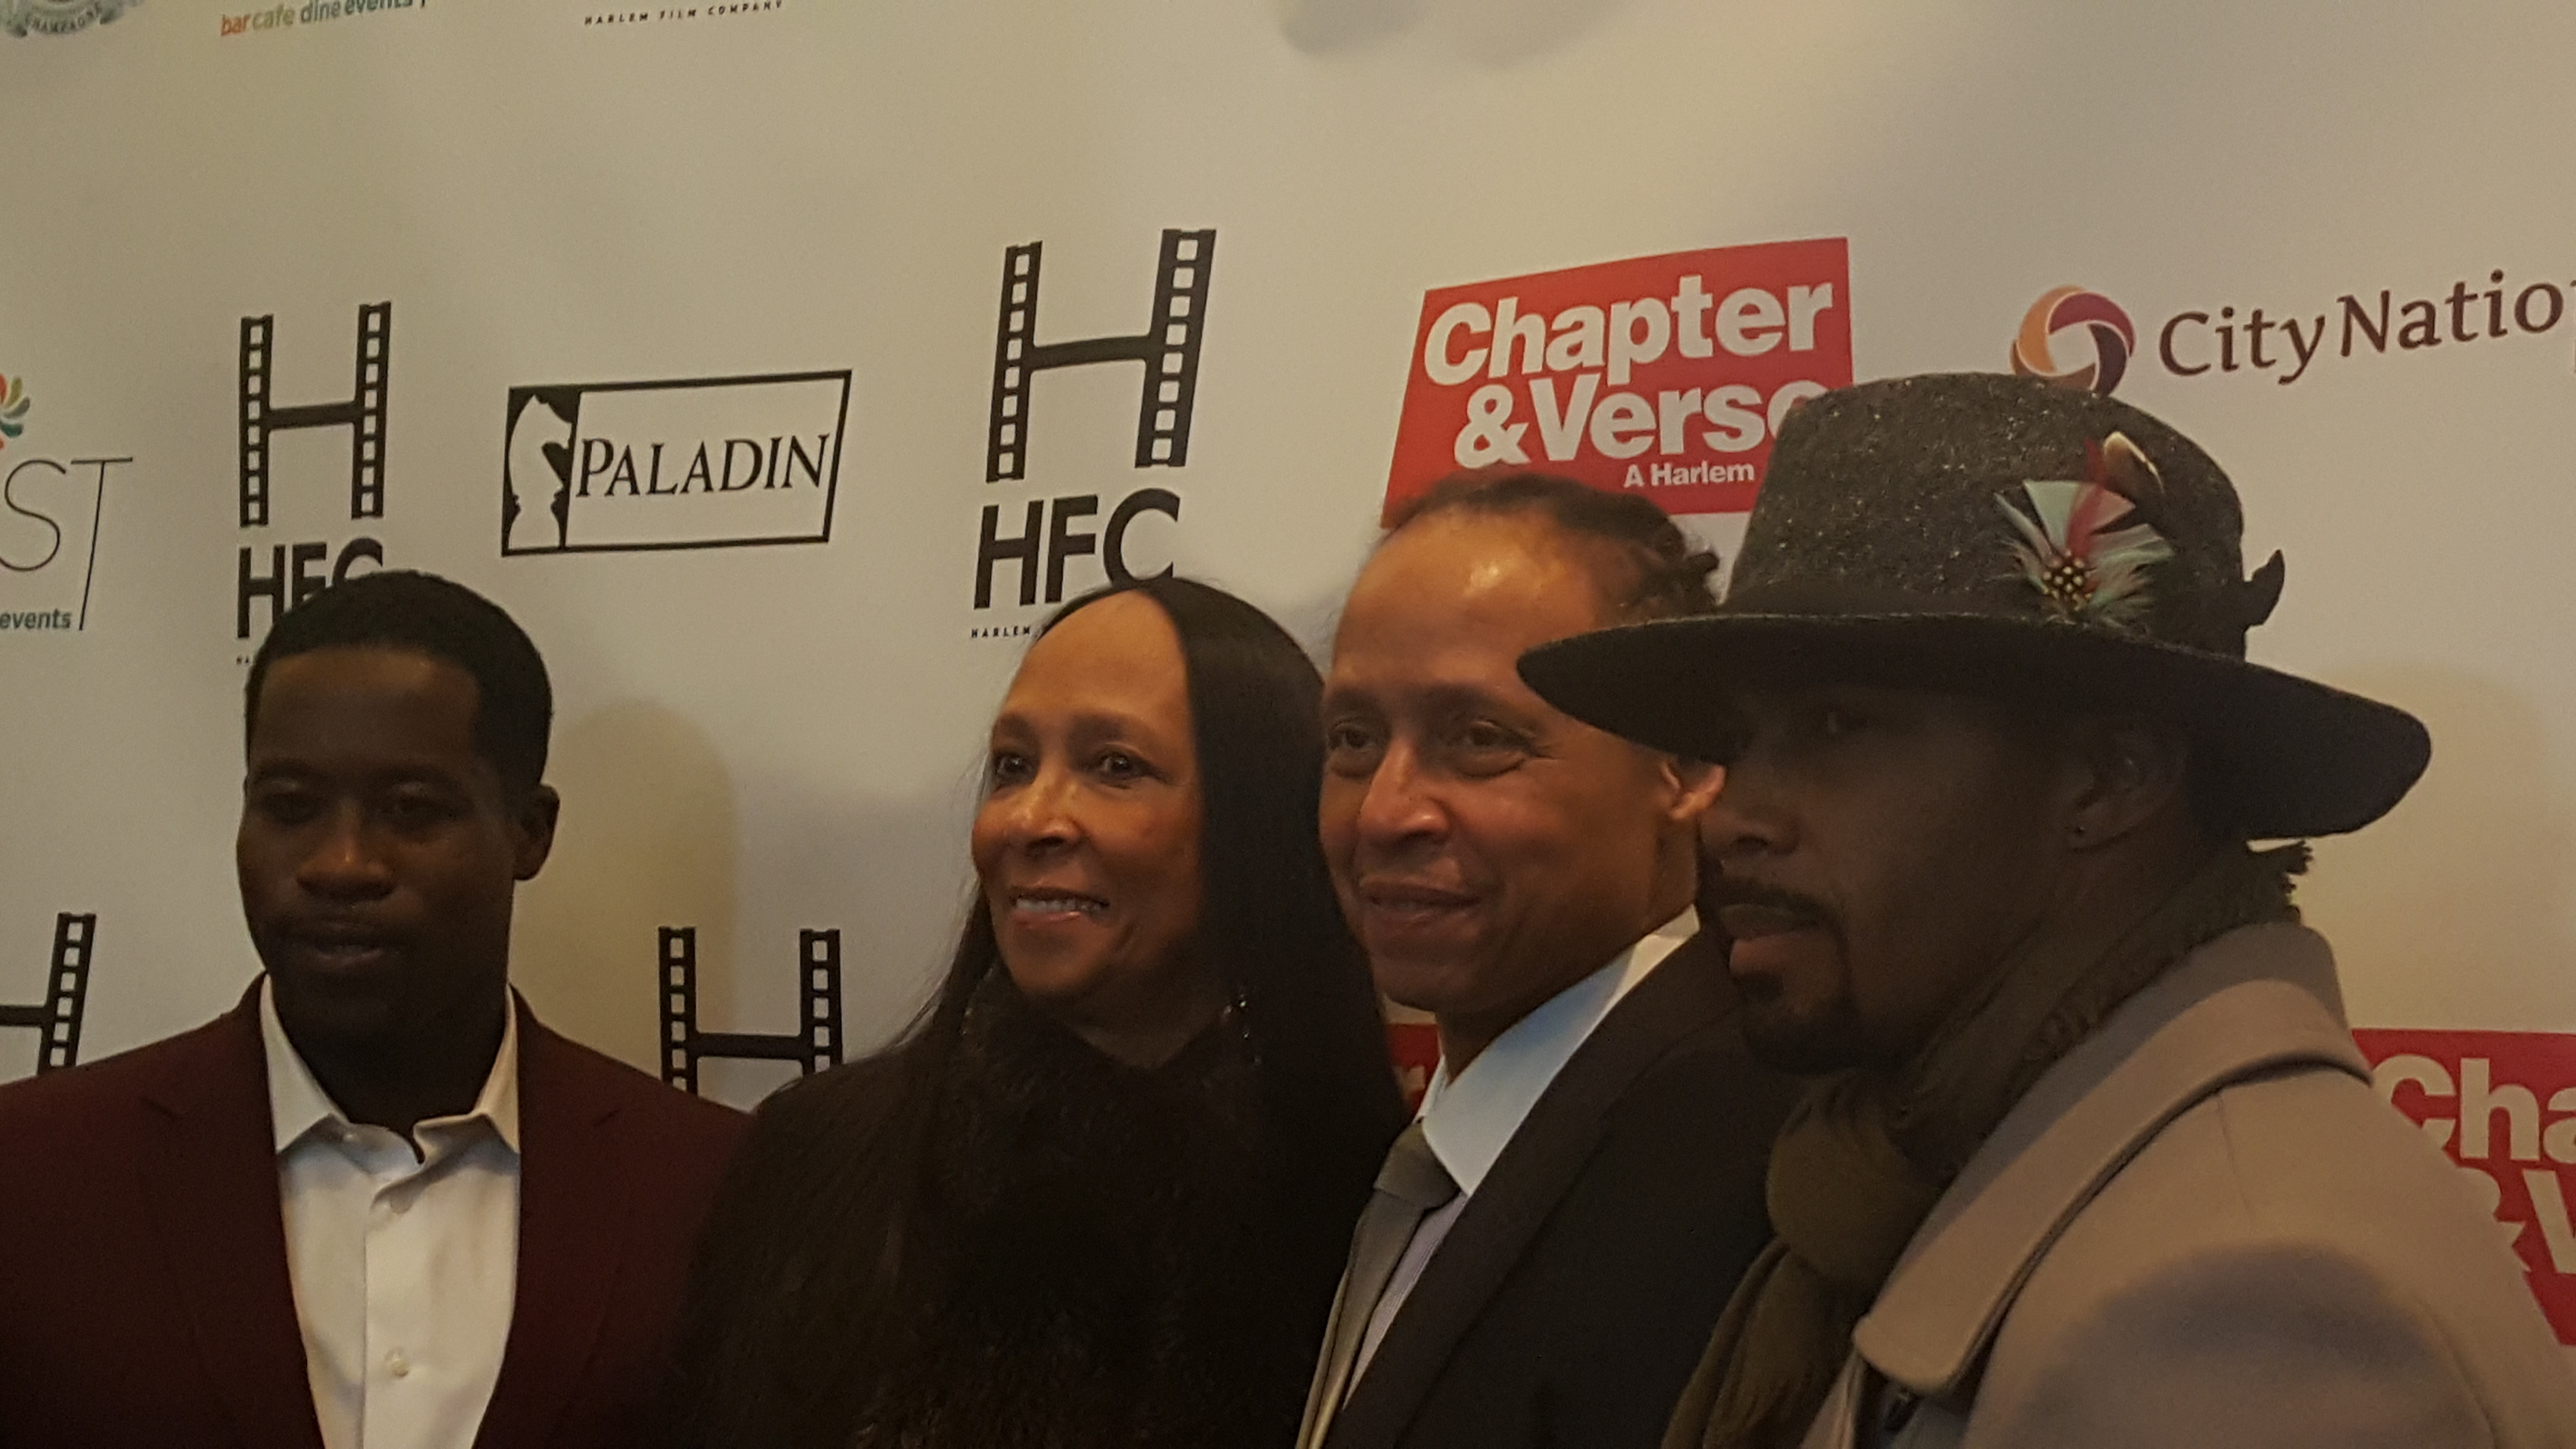 chapter and verse red carpet opening night party at mist harlem chapter and verse red carpet opening night party at mist harlem new york amsterdam news the new black view